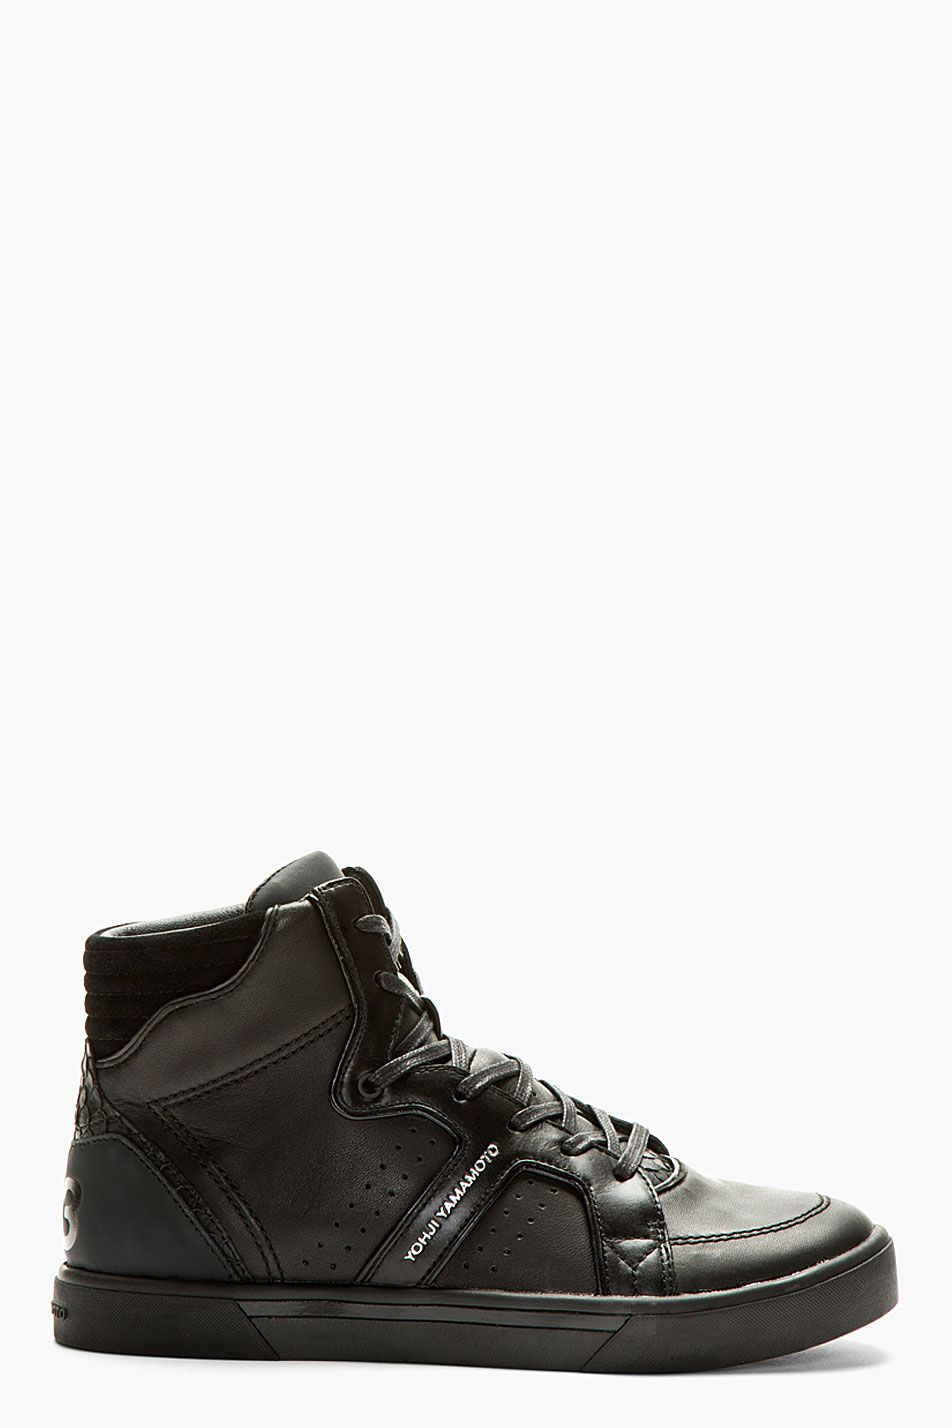 63e996122 Y-3 Black Rydge High-Top Sneakers